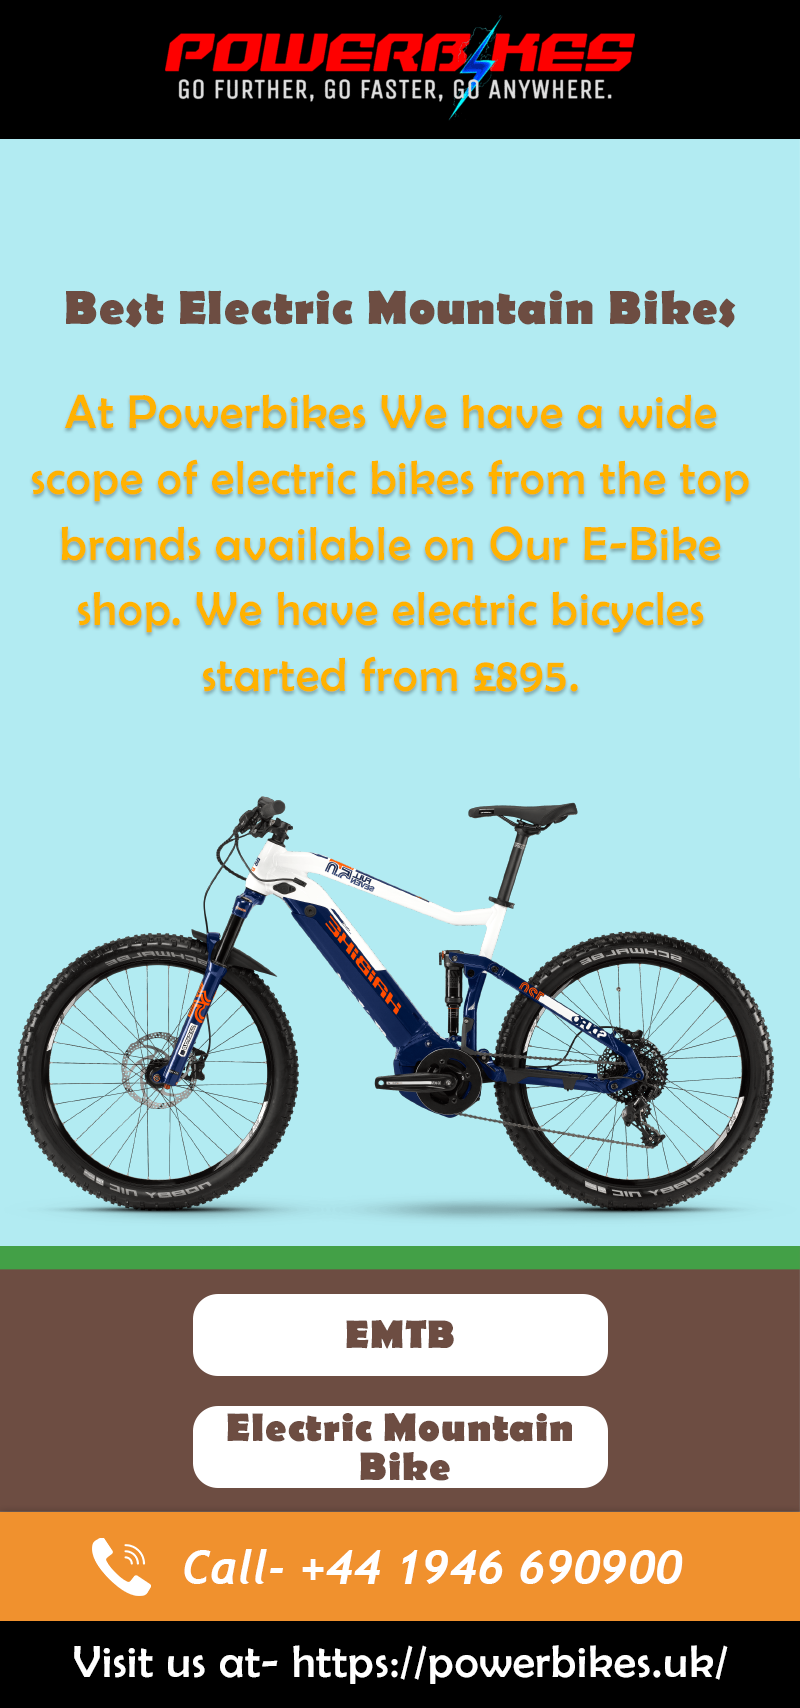 Electric Mountain Bike Opens Up More Opportunities One Other